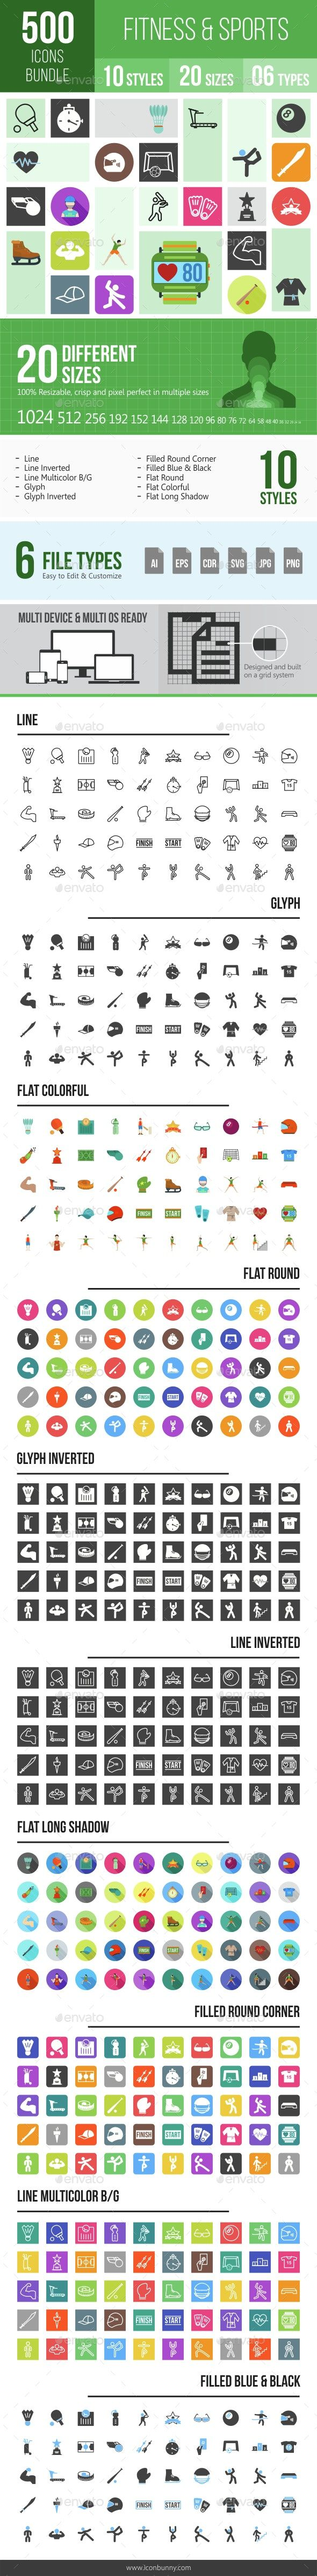 500 Fitness & Sports Icons Bundle #AD #amp, #AFFILIATE, #Fitness, #Bundle, #Icons